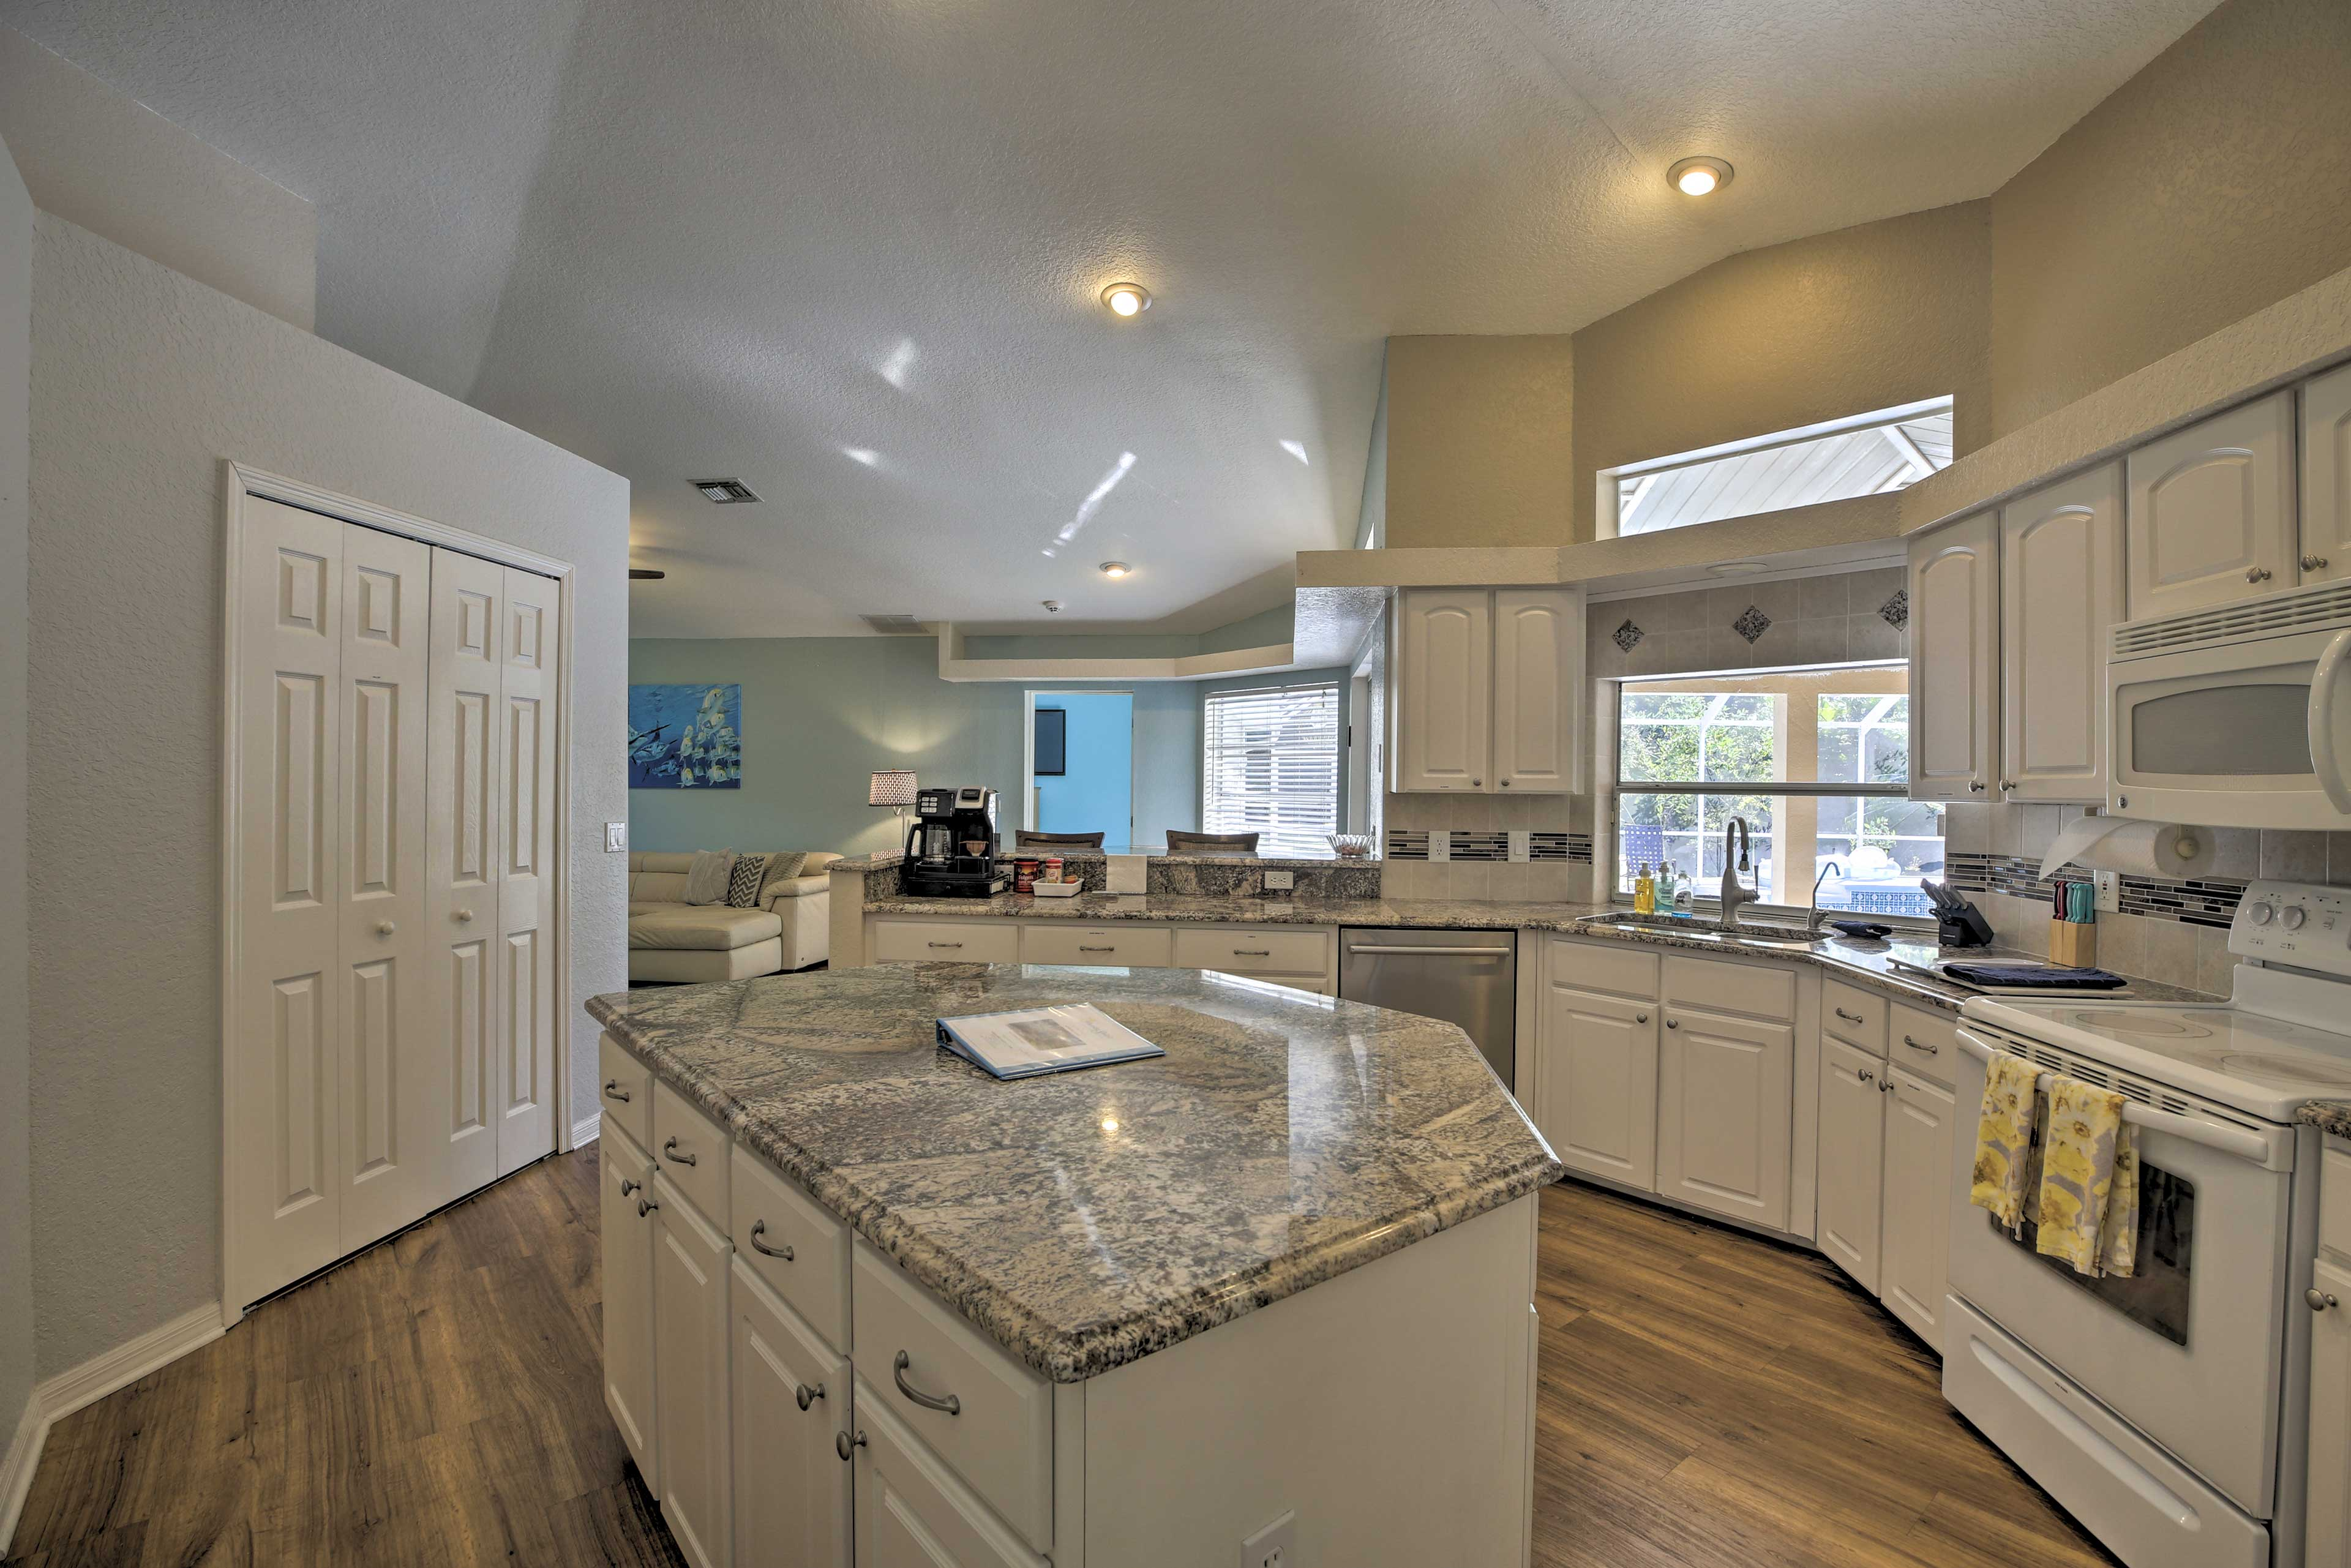 Fully Equipped Kitchen | Granite Countertops | Drip Coffee Maker